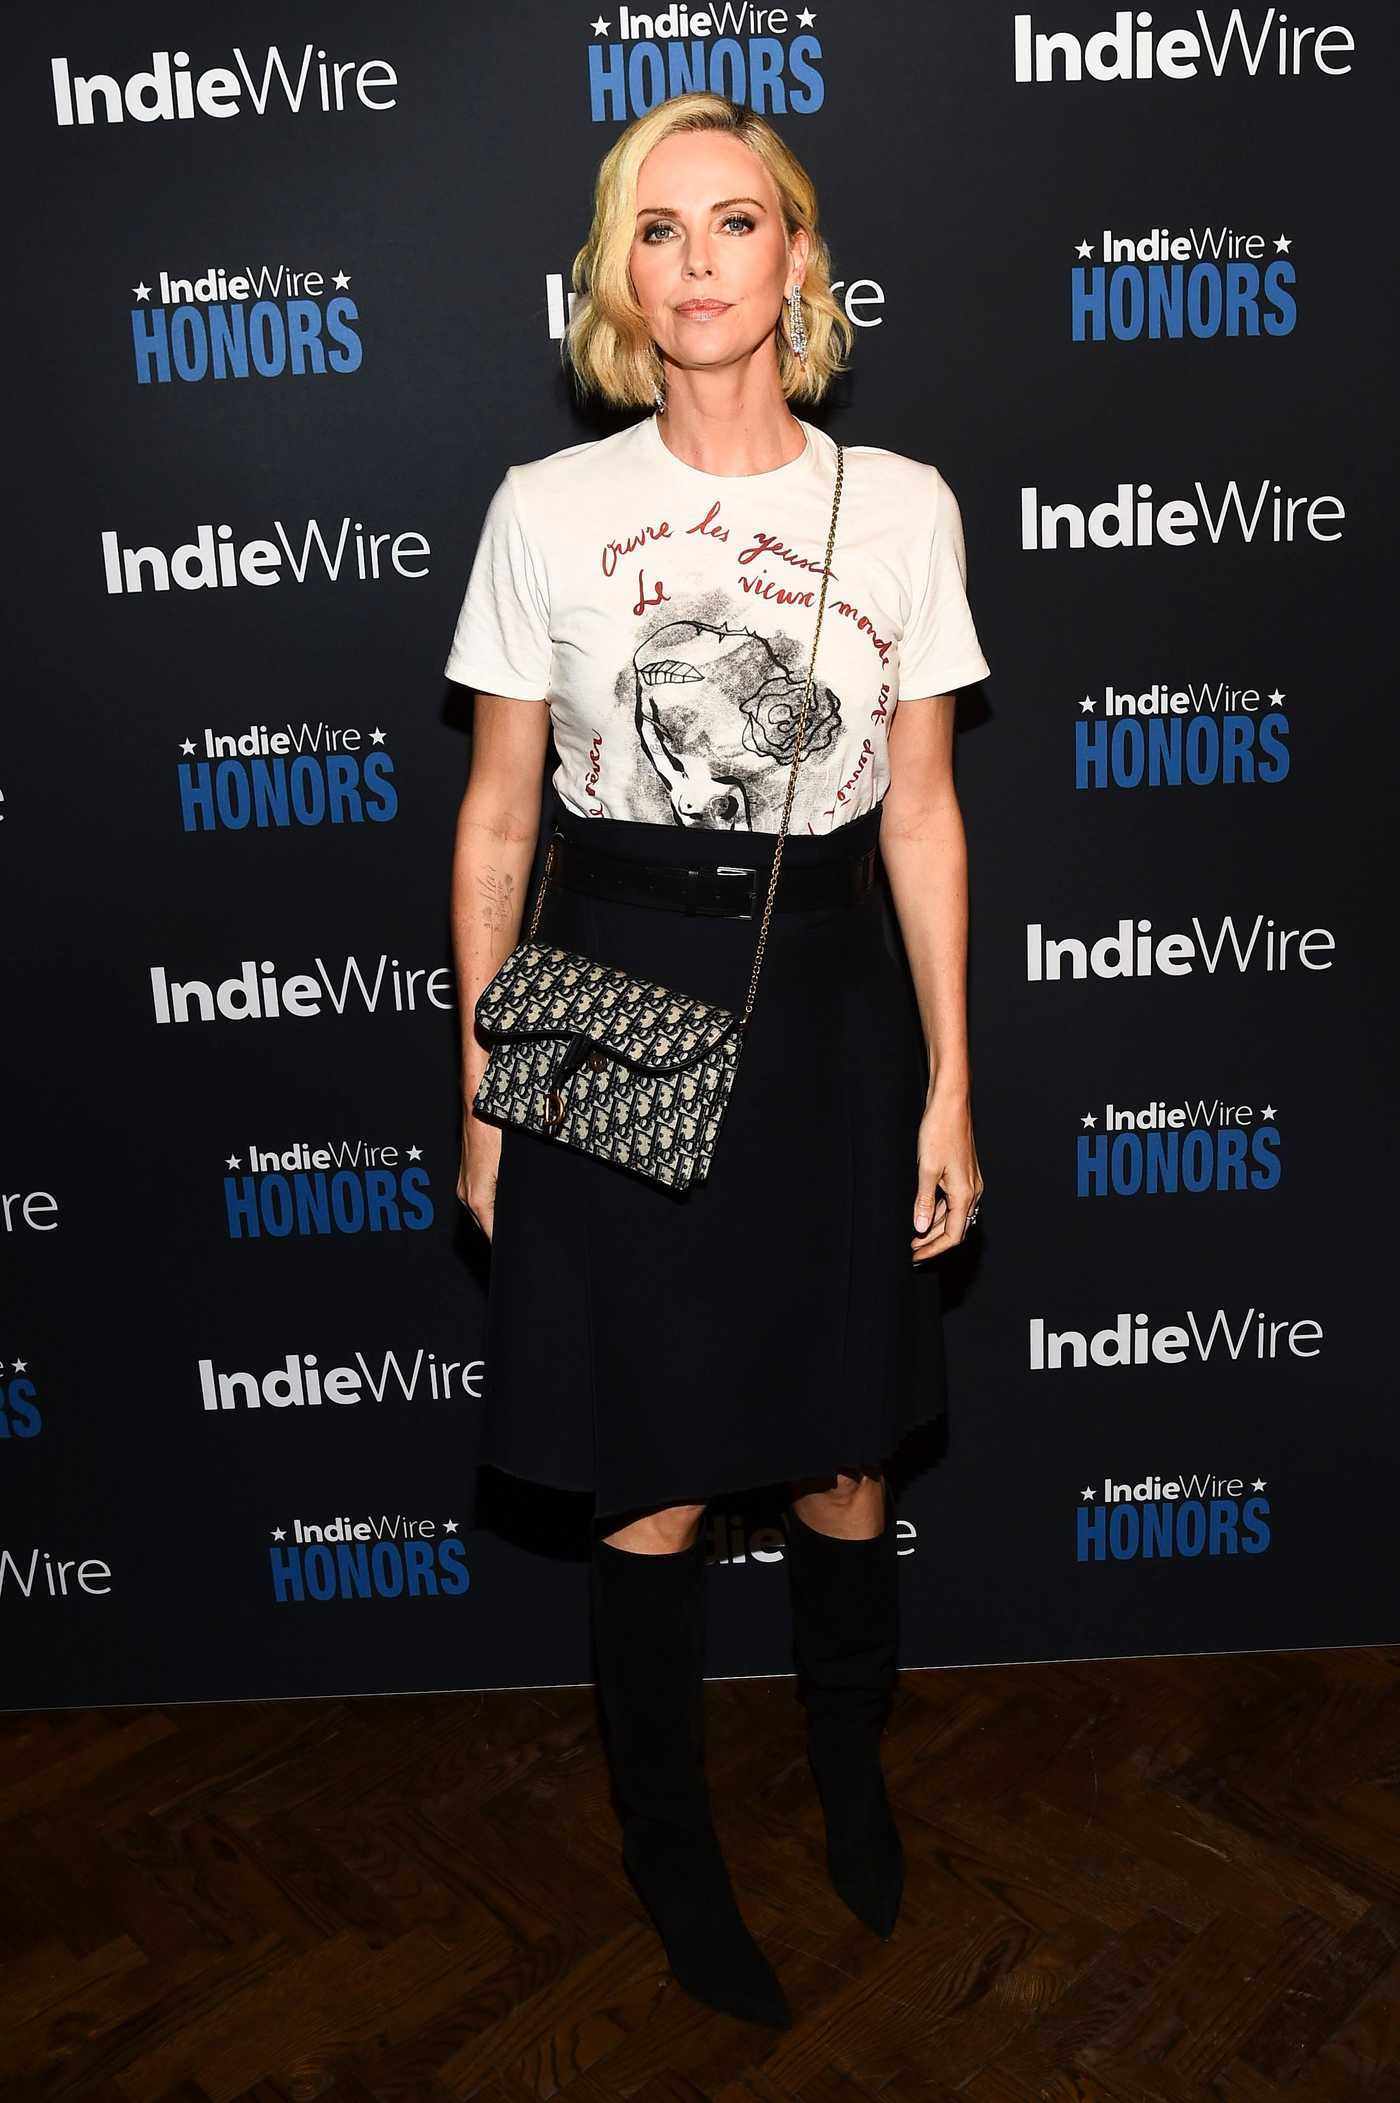 Charlize Theron Attends 2018 IndieWire Honors at No Name in Los Angeles 11/01/2018